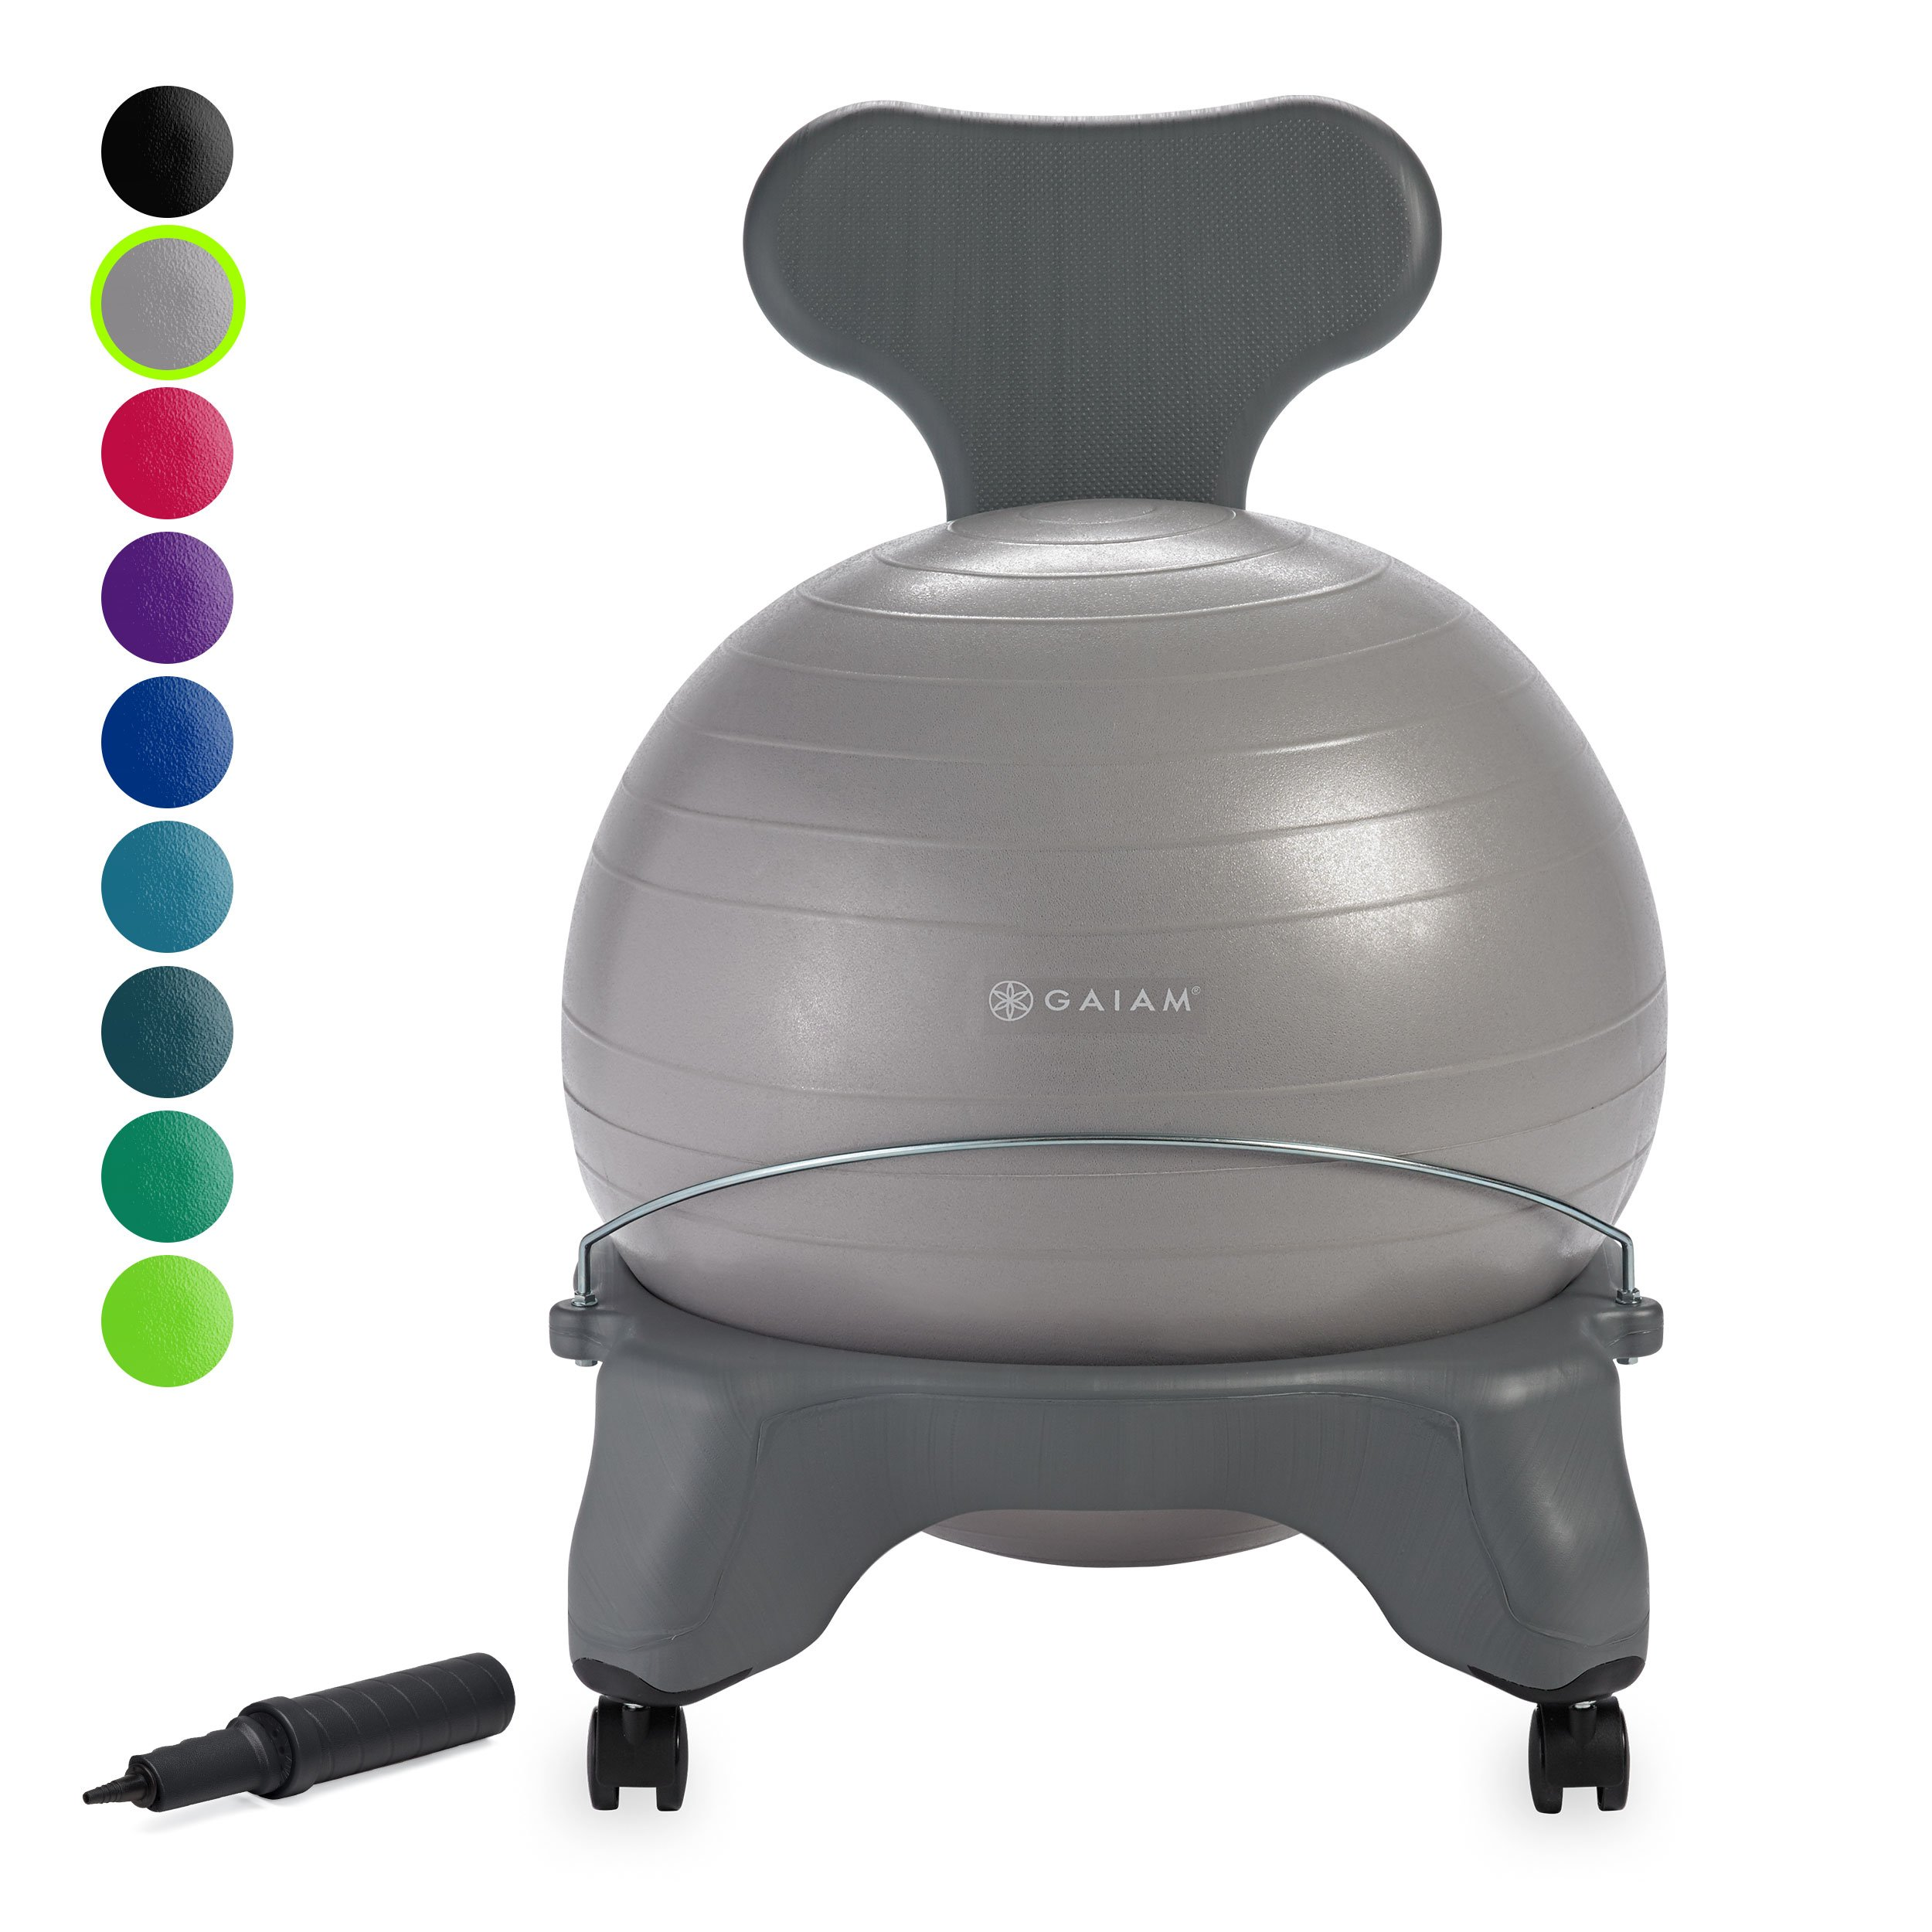 Gaiam Classic Balance Ball Chair - Exercise Stability Yoga Ball Premium Ergonomic Chair for Home and Office Desk with Air Pump, Exercise Guide and Satisfaction Guarantee, Cool Grey by Gaiam